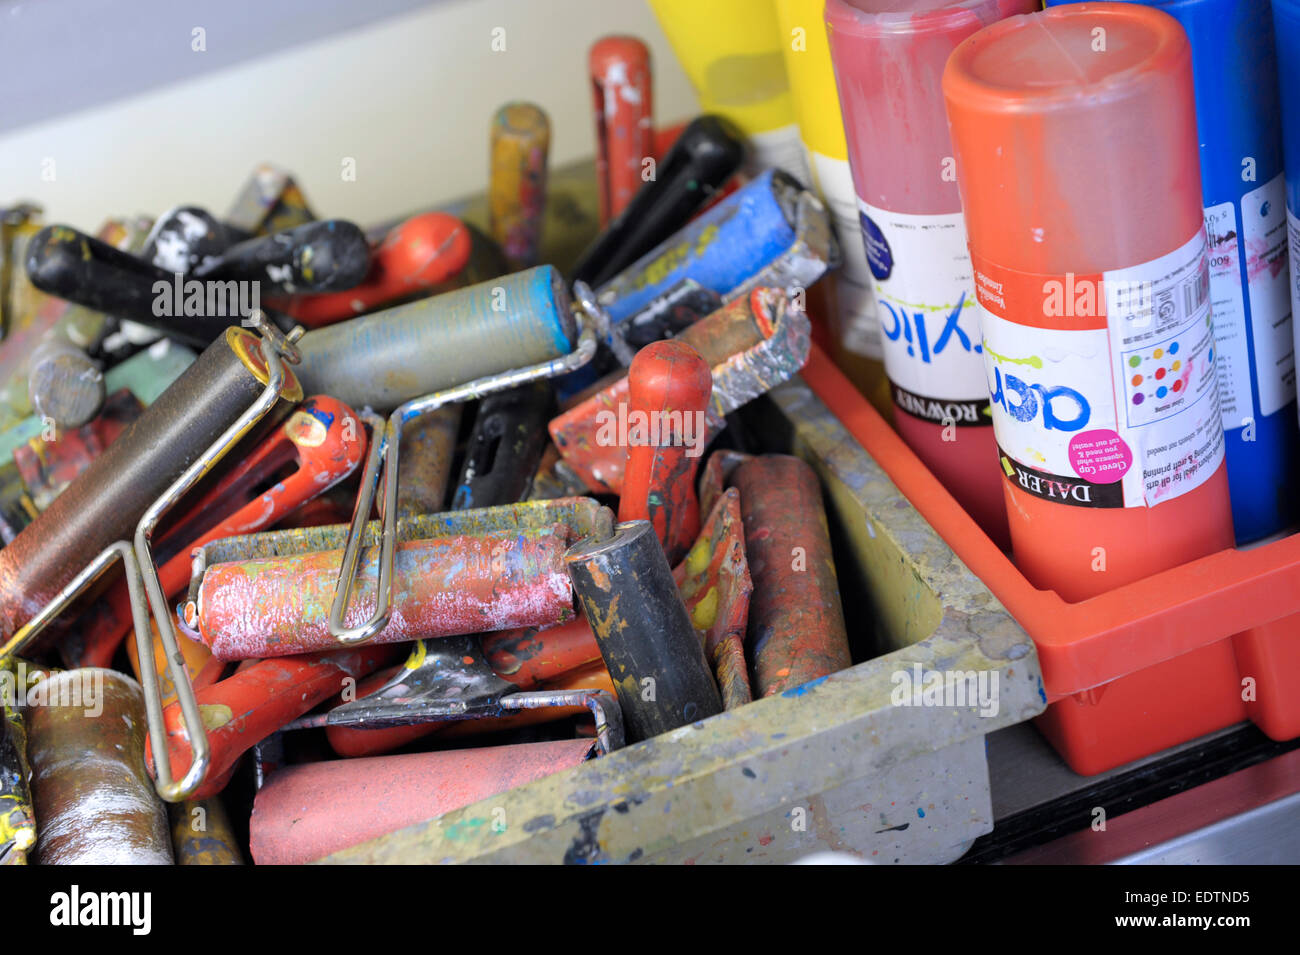 Silk screen rollers and acrylic paint pots in a school art room - Stock Image